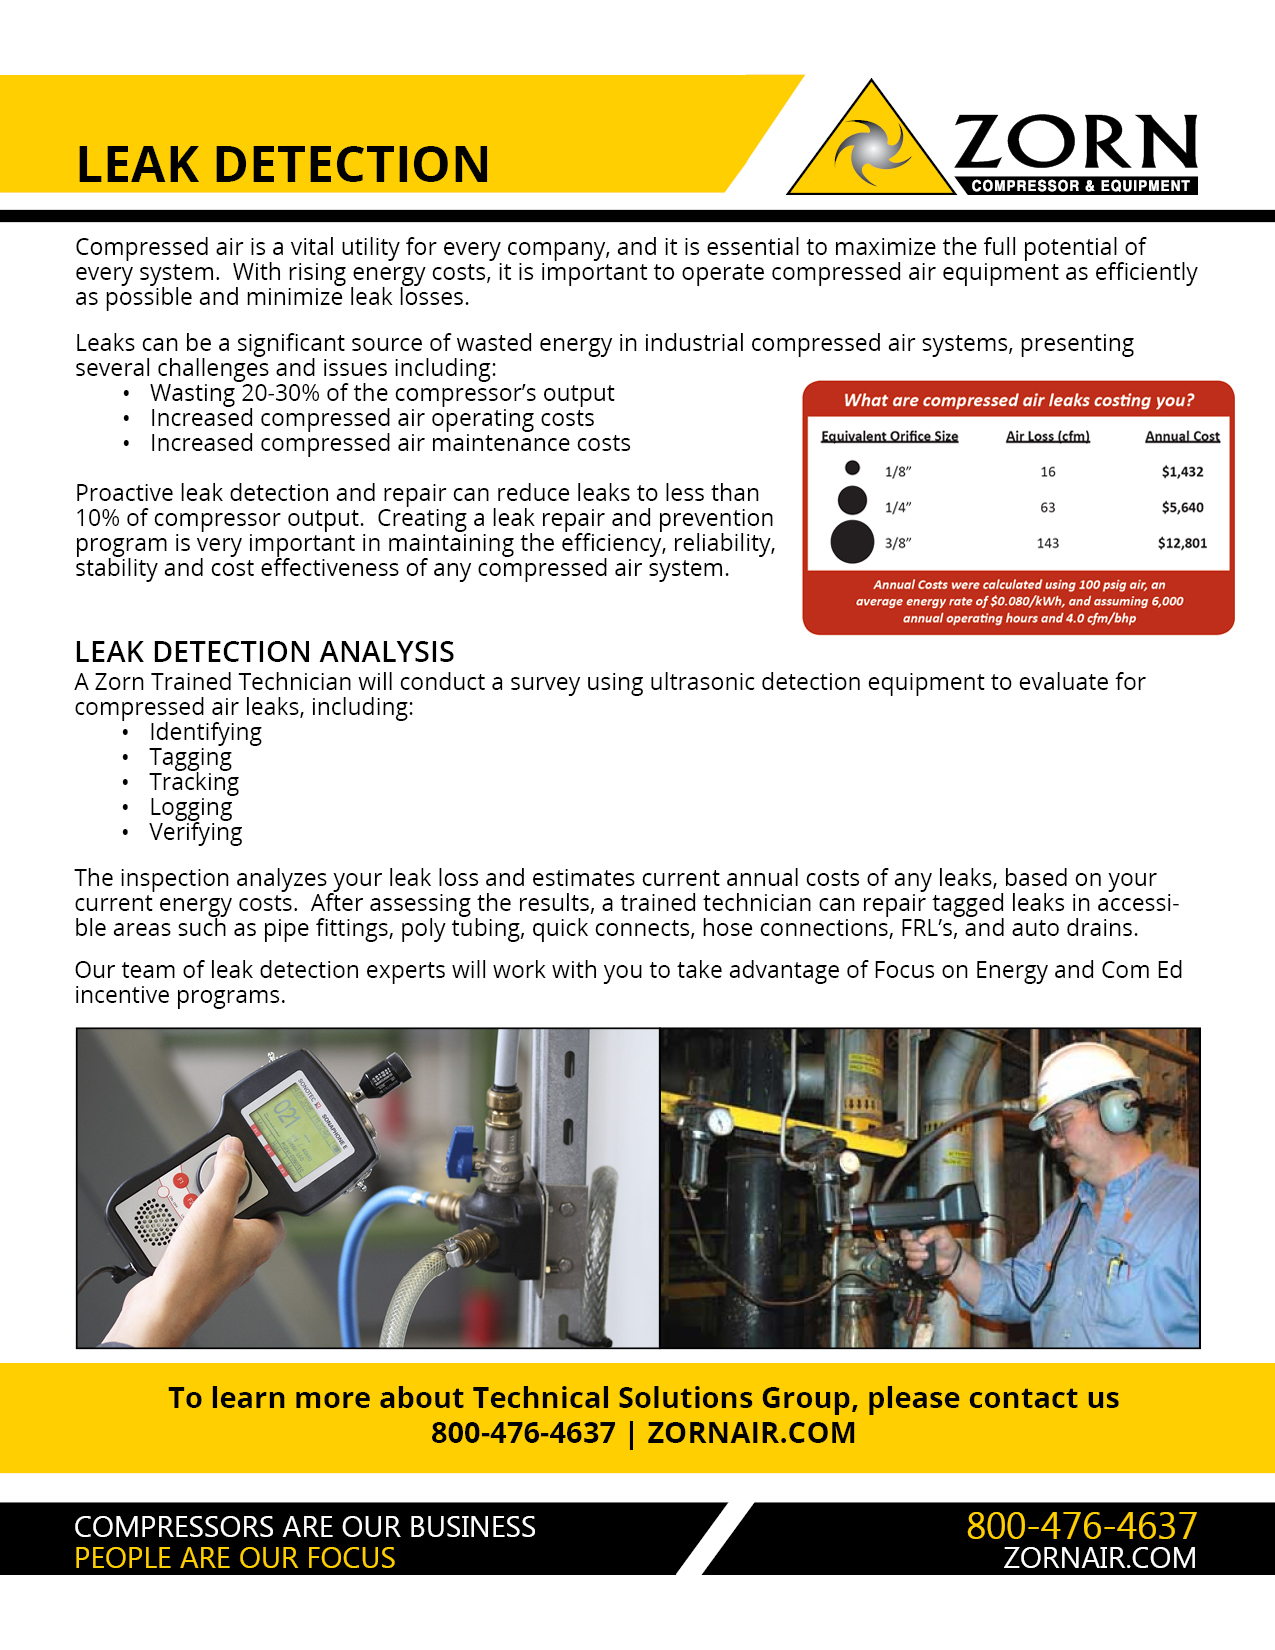 TSG Brochure-Leak Detection Final.jpg